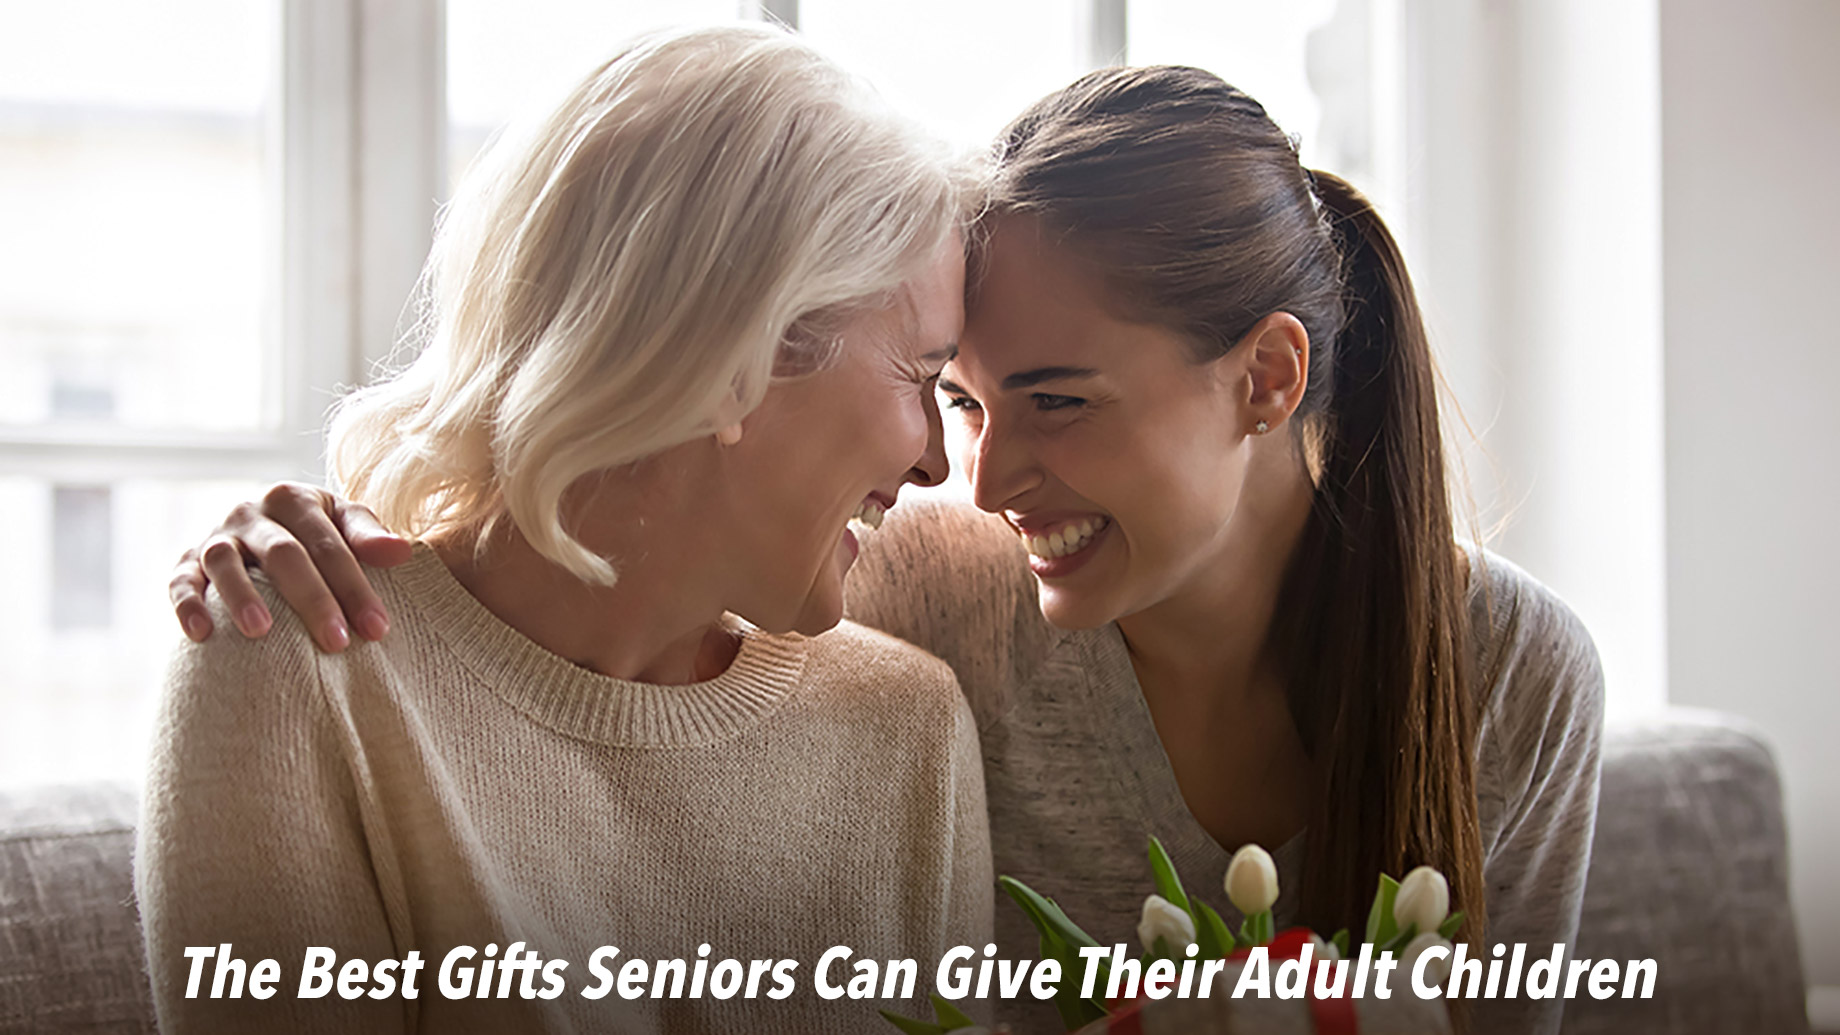 The Best Gifts Seniors Can Give Their Adult Children